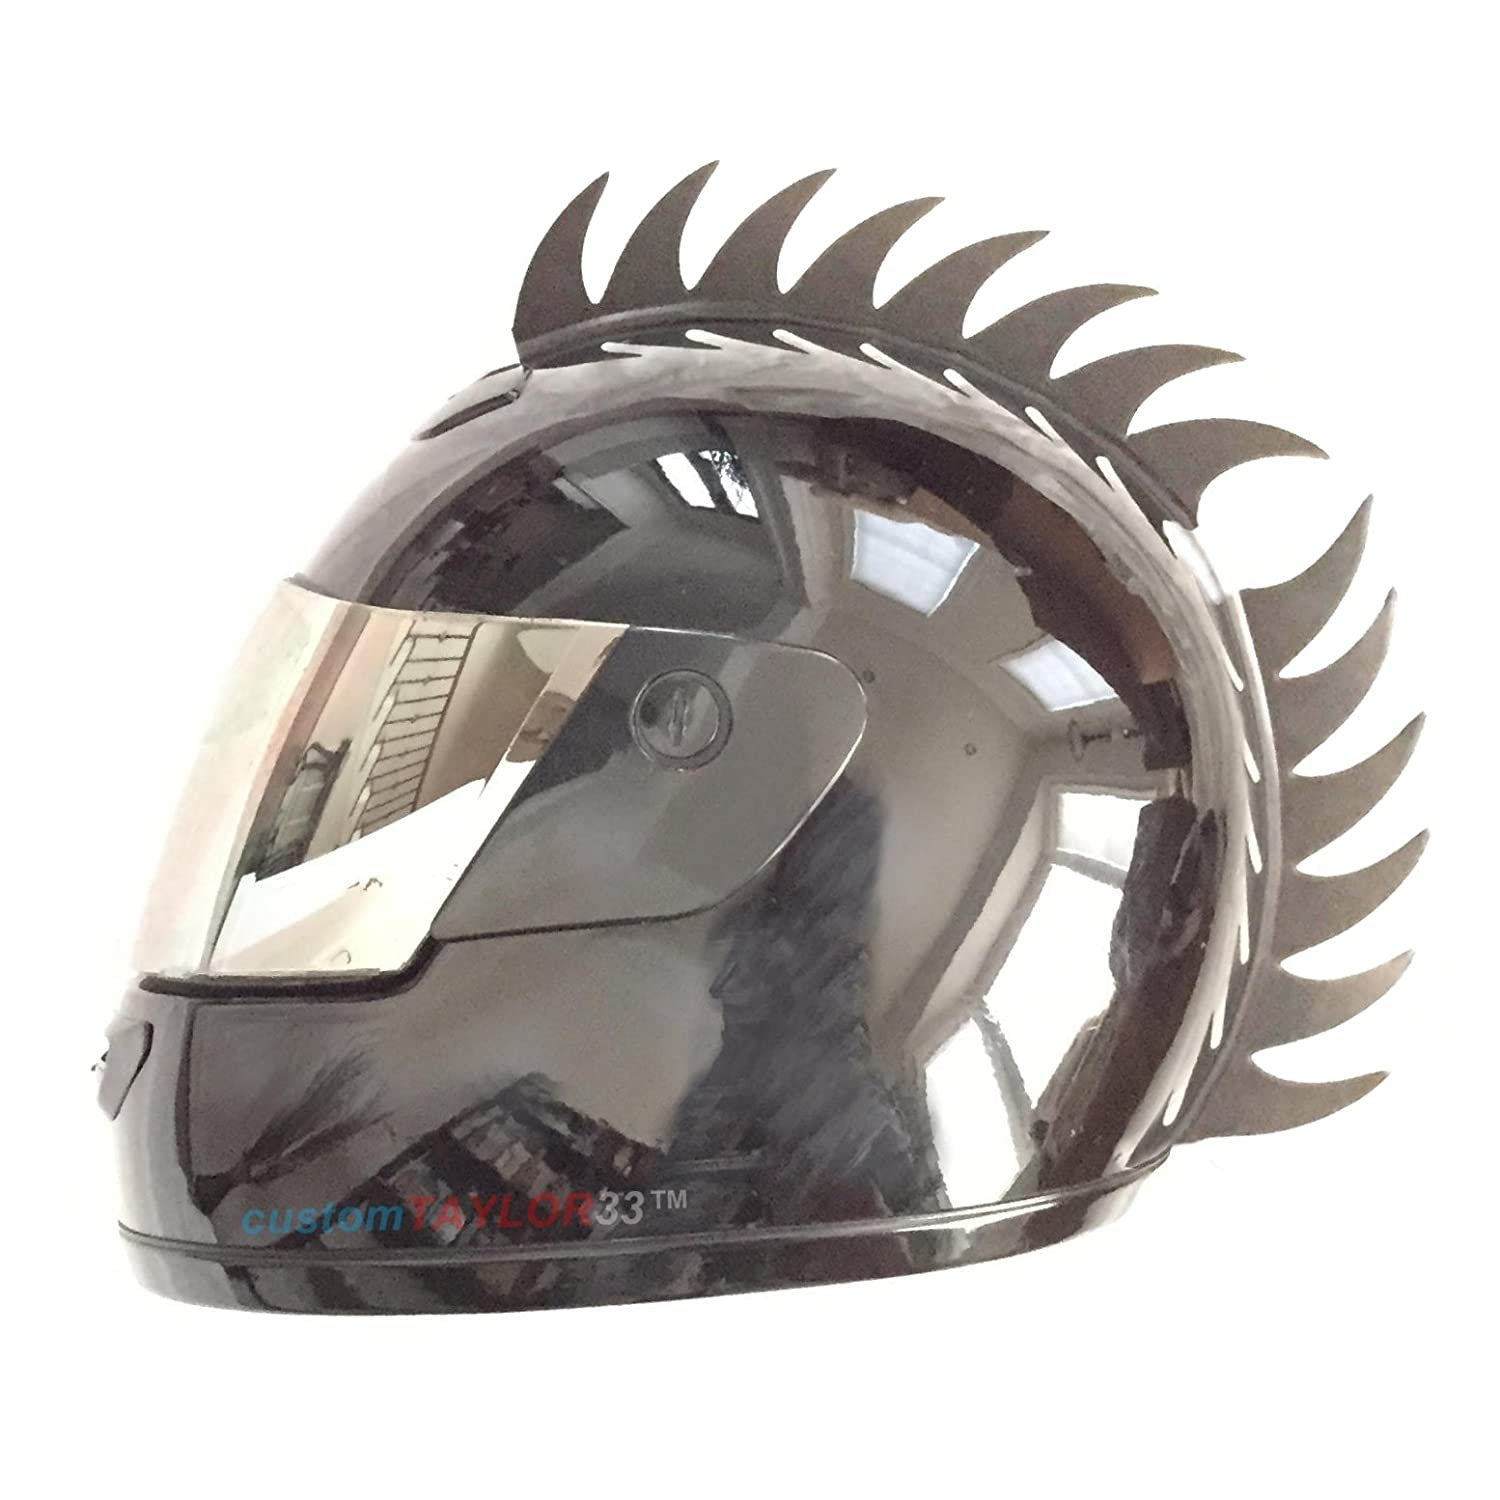 Cr/ête Warhawk//Mohawk de d/écoration du casque Customtaylor33 Casque non inclus